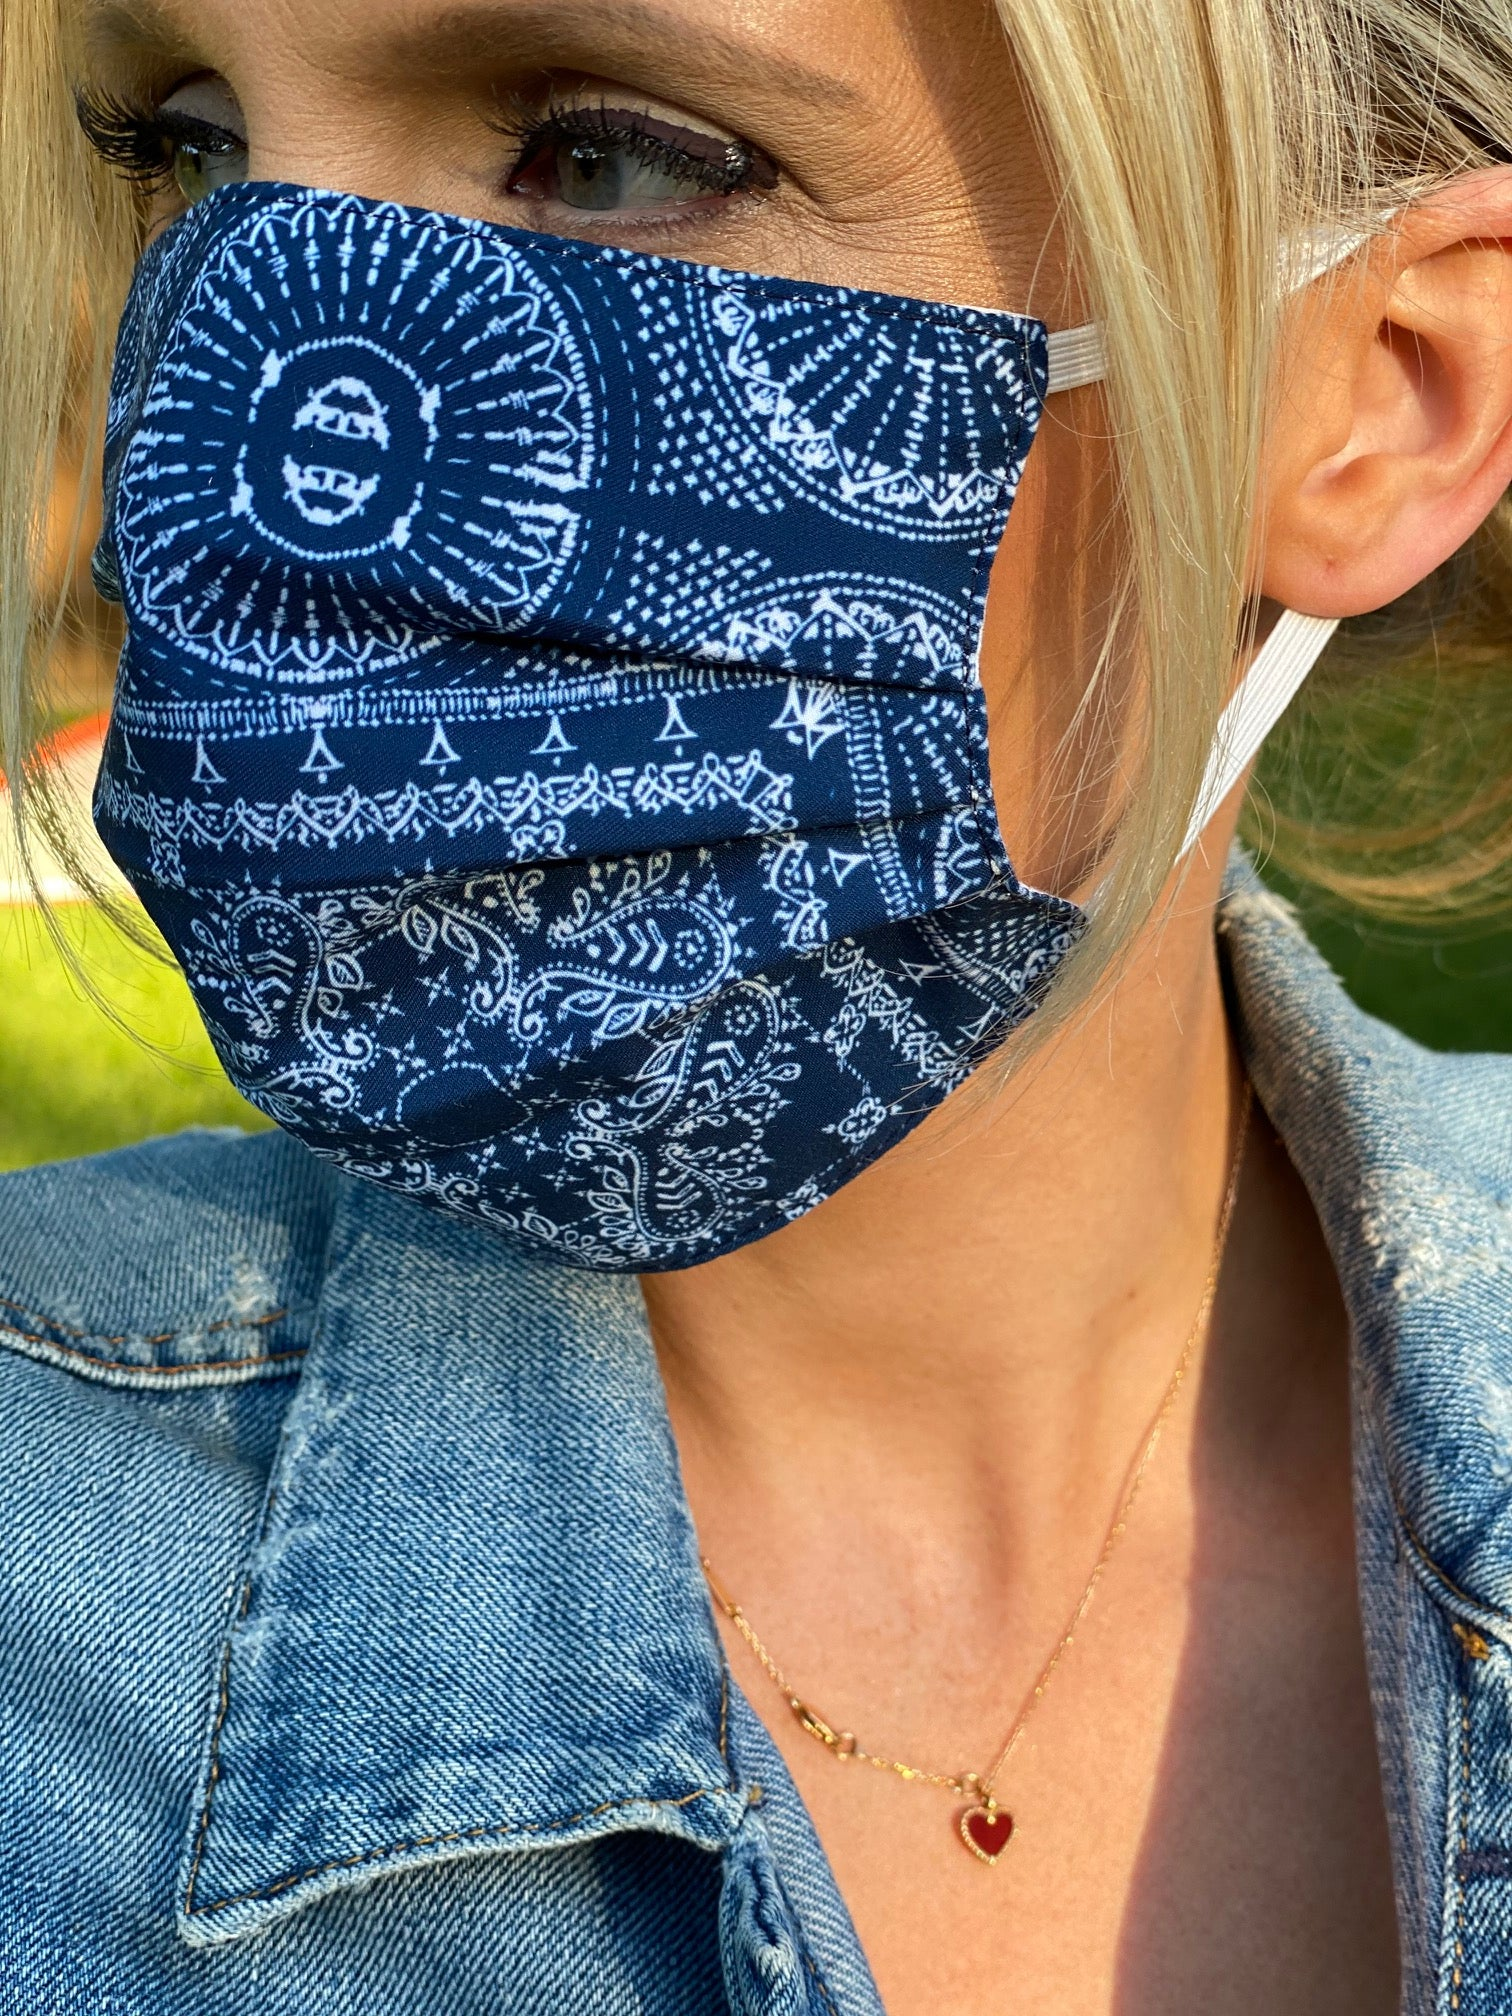 New! Jan & Jill Cotton Face Coverings (Non-Medical Masks)